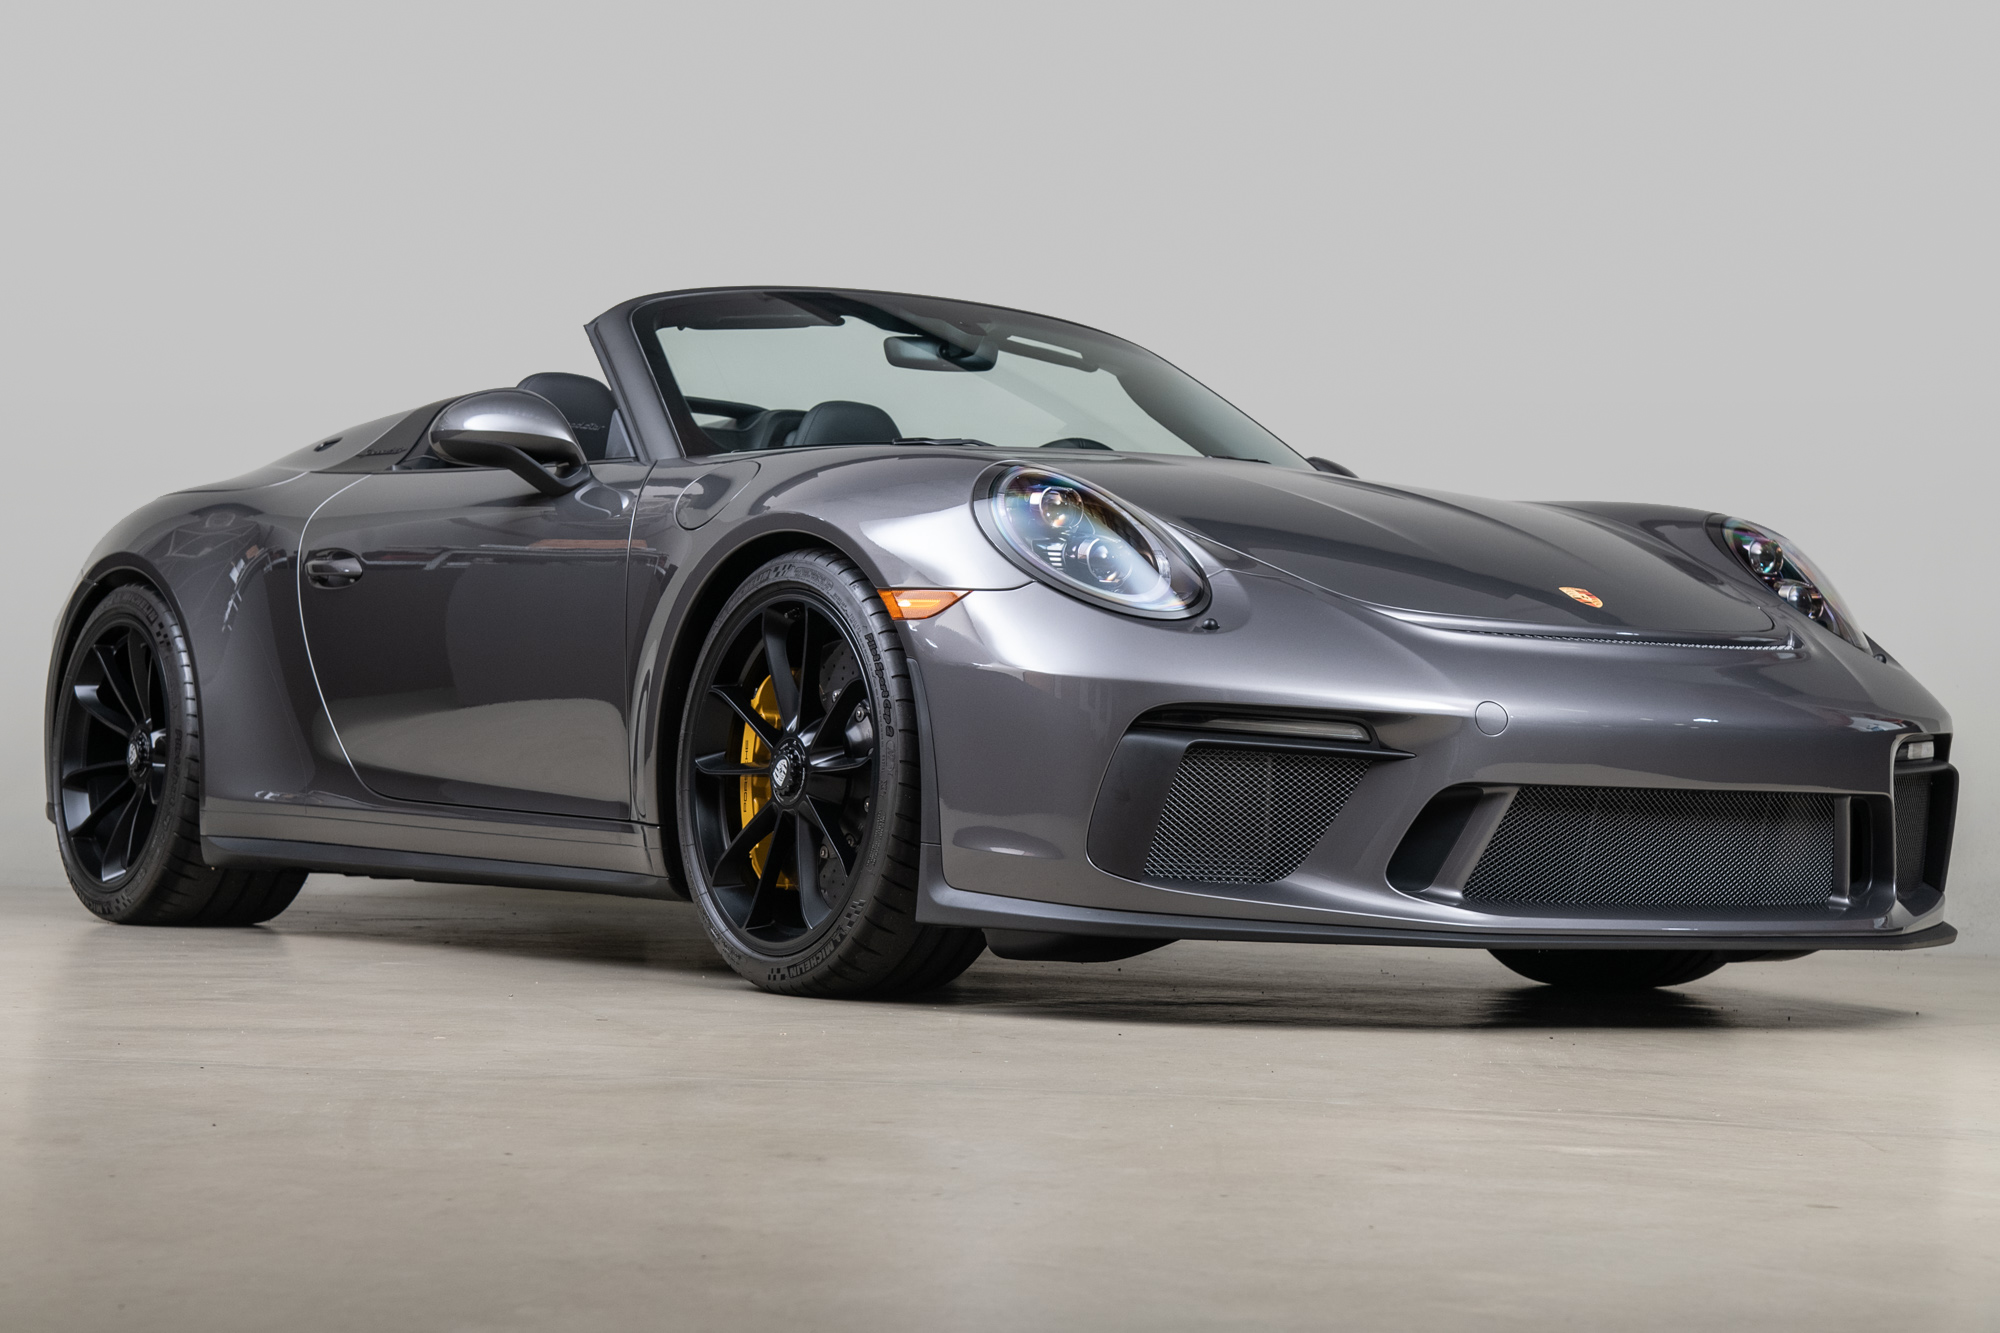 2019 Porsche 911 Speedster , AGATE GRAY METALLIC, VIN WP0CF2A99KS172202, MILEAGE 316